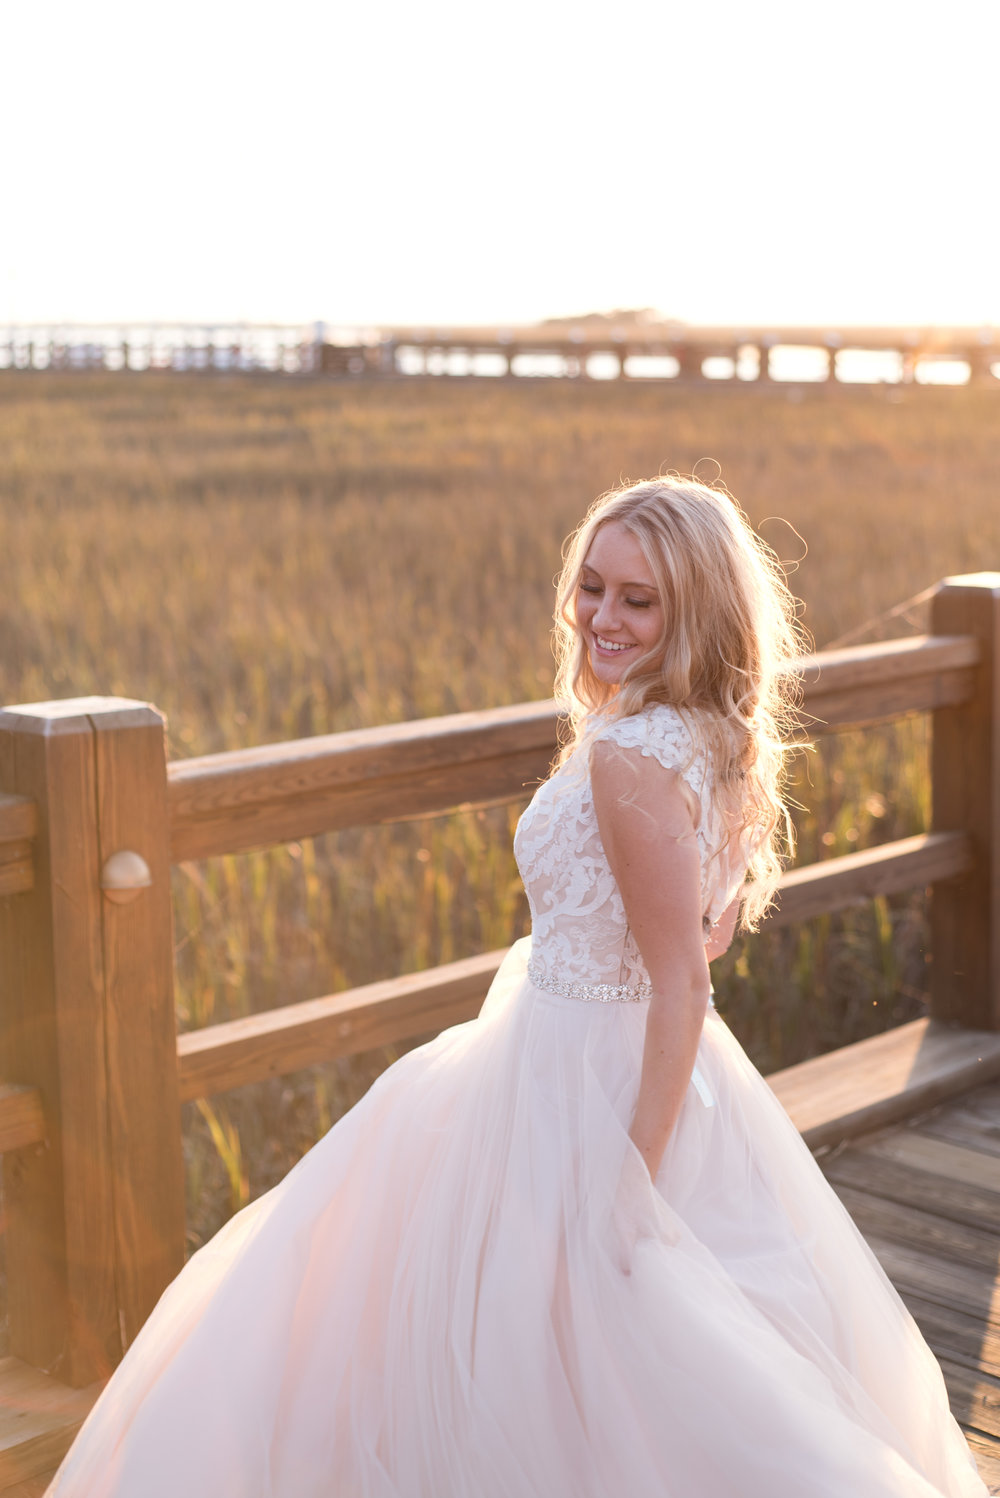 Ivory-and-Beau-bridal-boutique-Delegal-Marina-Samba-to-the-Sea-Photography-carrie-maggie-sottero-rebecca-ingram-bridal-savannah-bridal-boutique-savannah-weddings-marsh-wedding-georgia-wedding-savannah-wedding-sunset-wedding-savannah-wedding-gowns-3.jpg